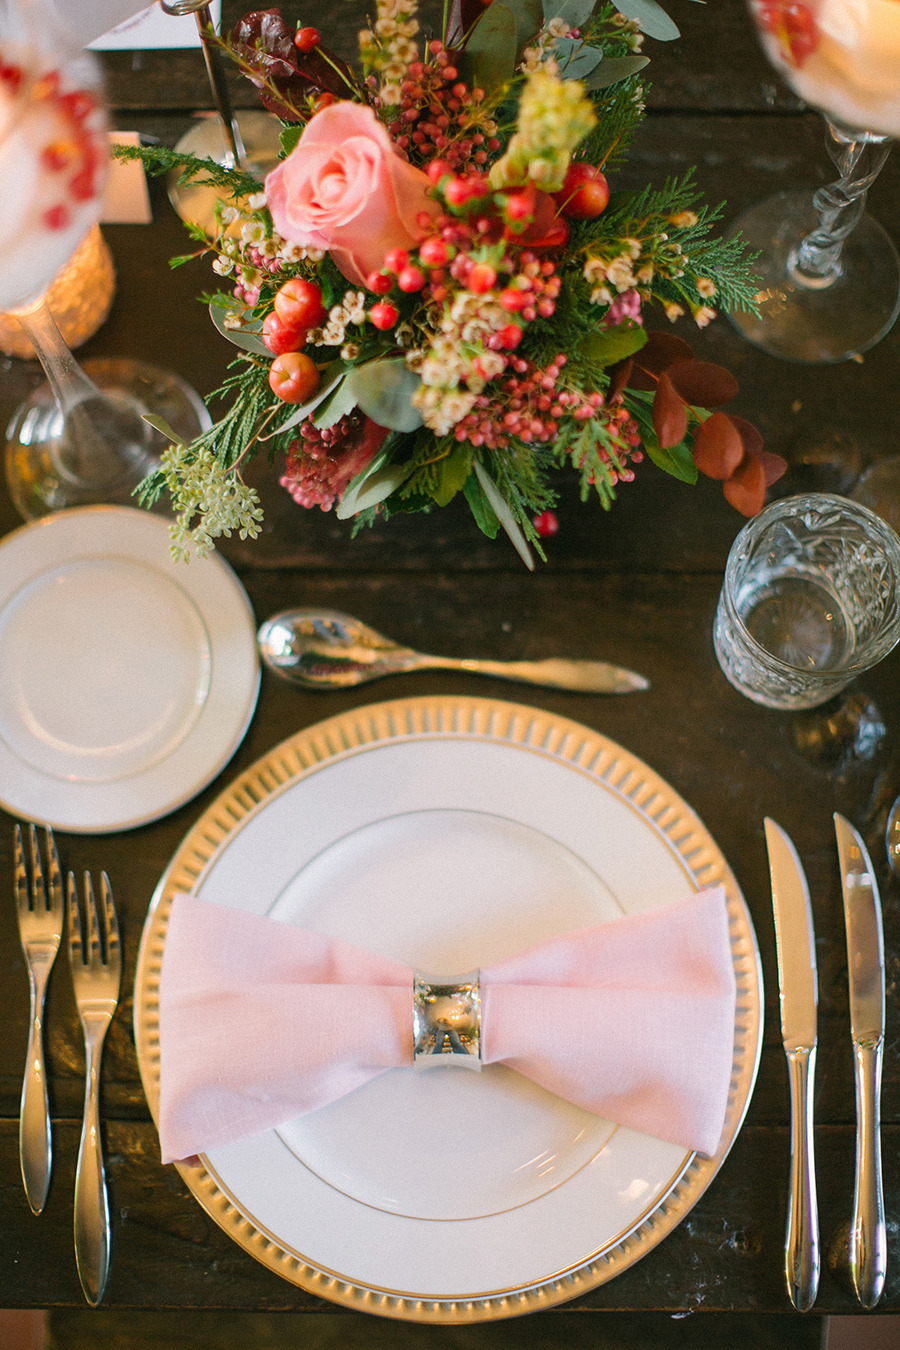 winter wedding place setting - Boho Chic Wedding Inspiration Shoot from Anna Roussos Photography - annaroussos.com | Read more : https://www.fabmood.com/boho-chic-wedding-inspiration-shoot-anna-roussos-photography